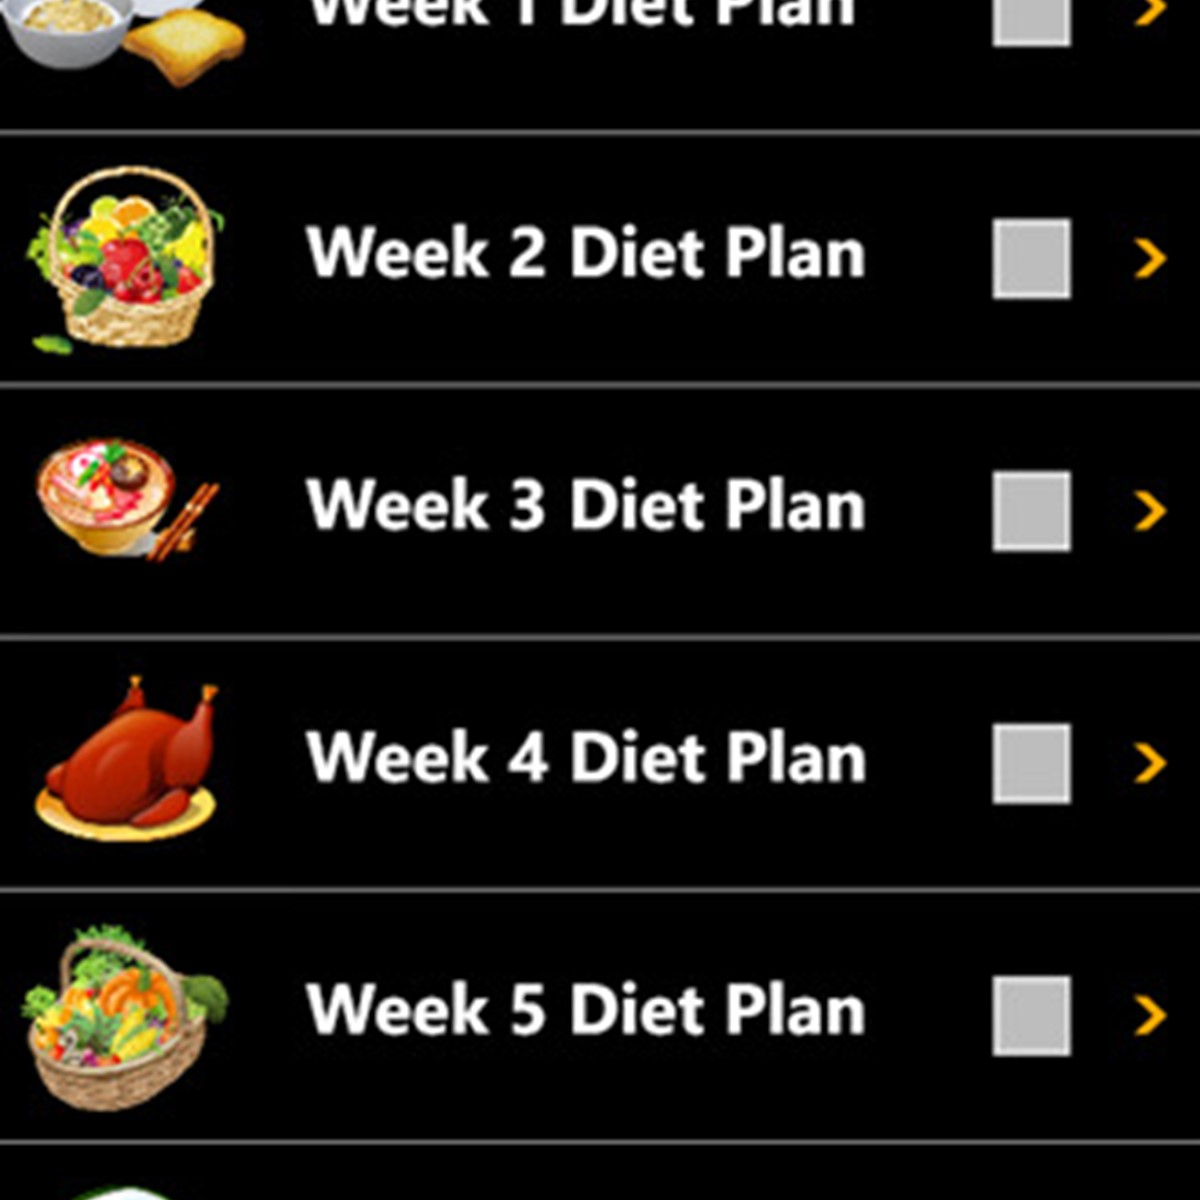 Recipe for diet plan